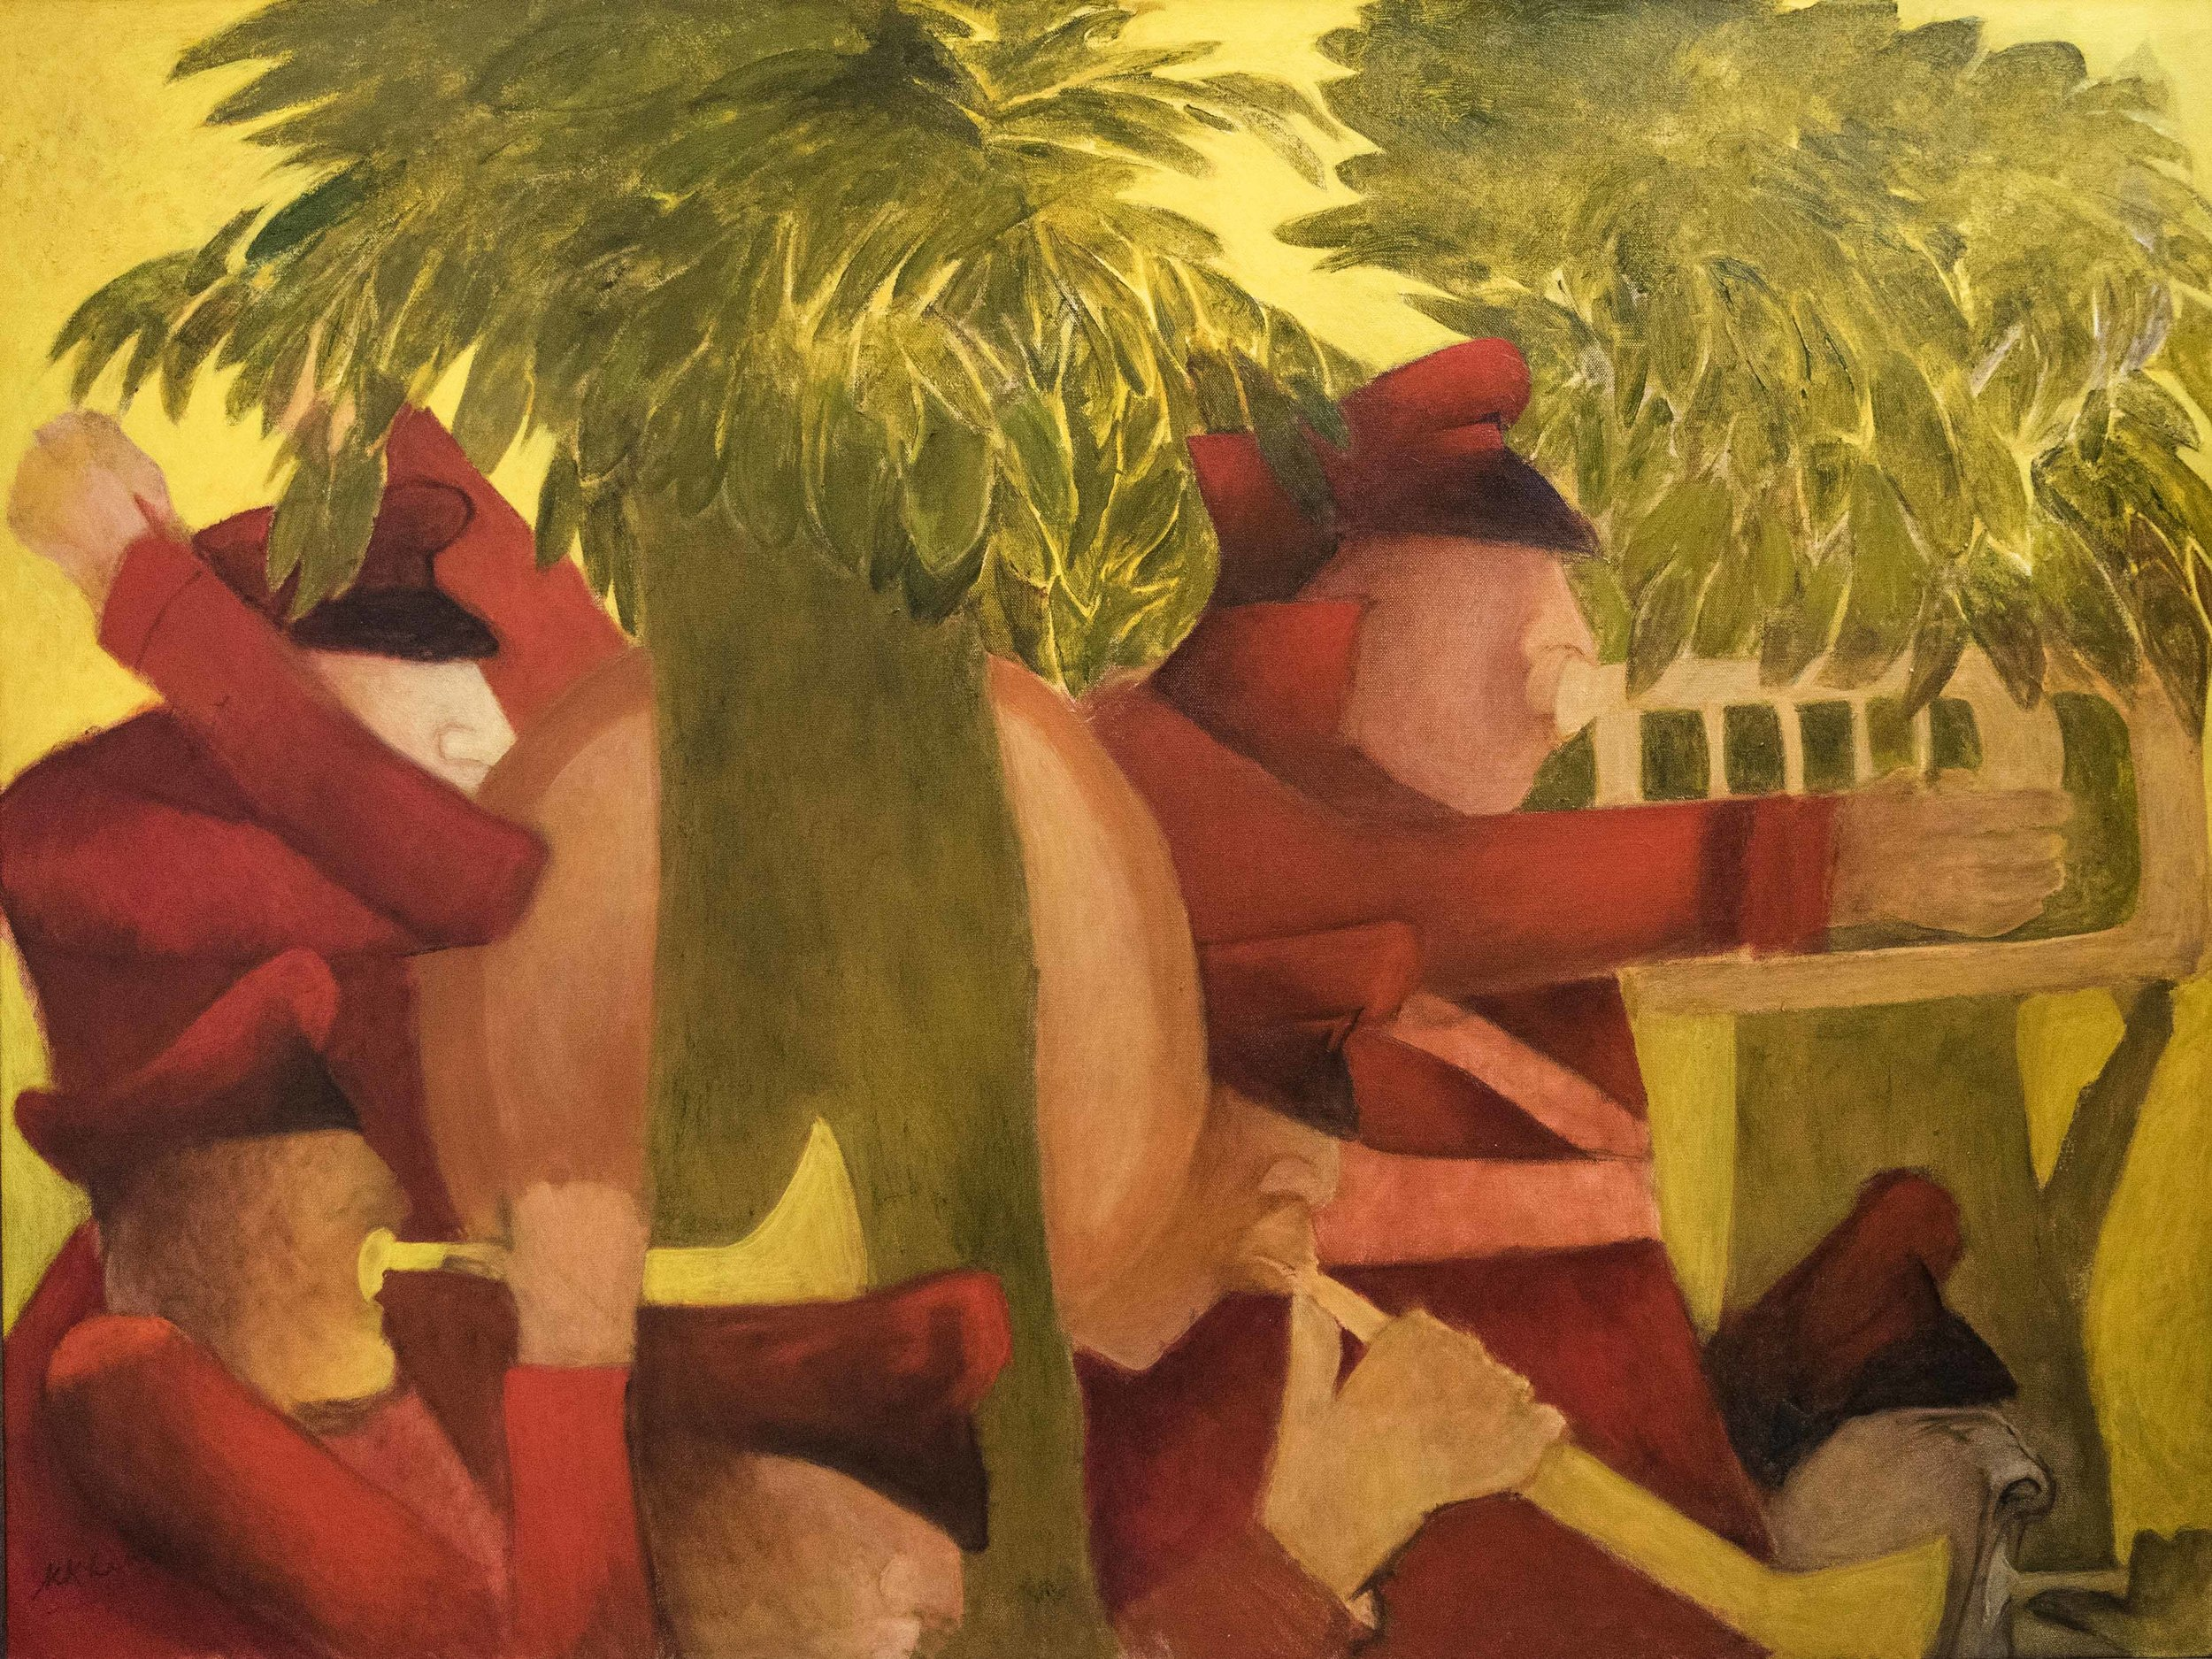 Krishen Khanna, Woodland Melody. Courtesy of Dhoomimal Art Gallery, India's oldest art gallery and now somewhat of an institution.